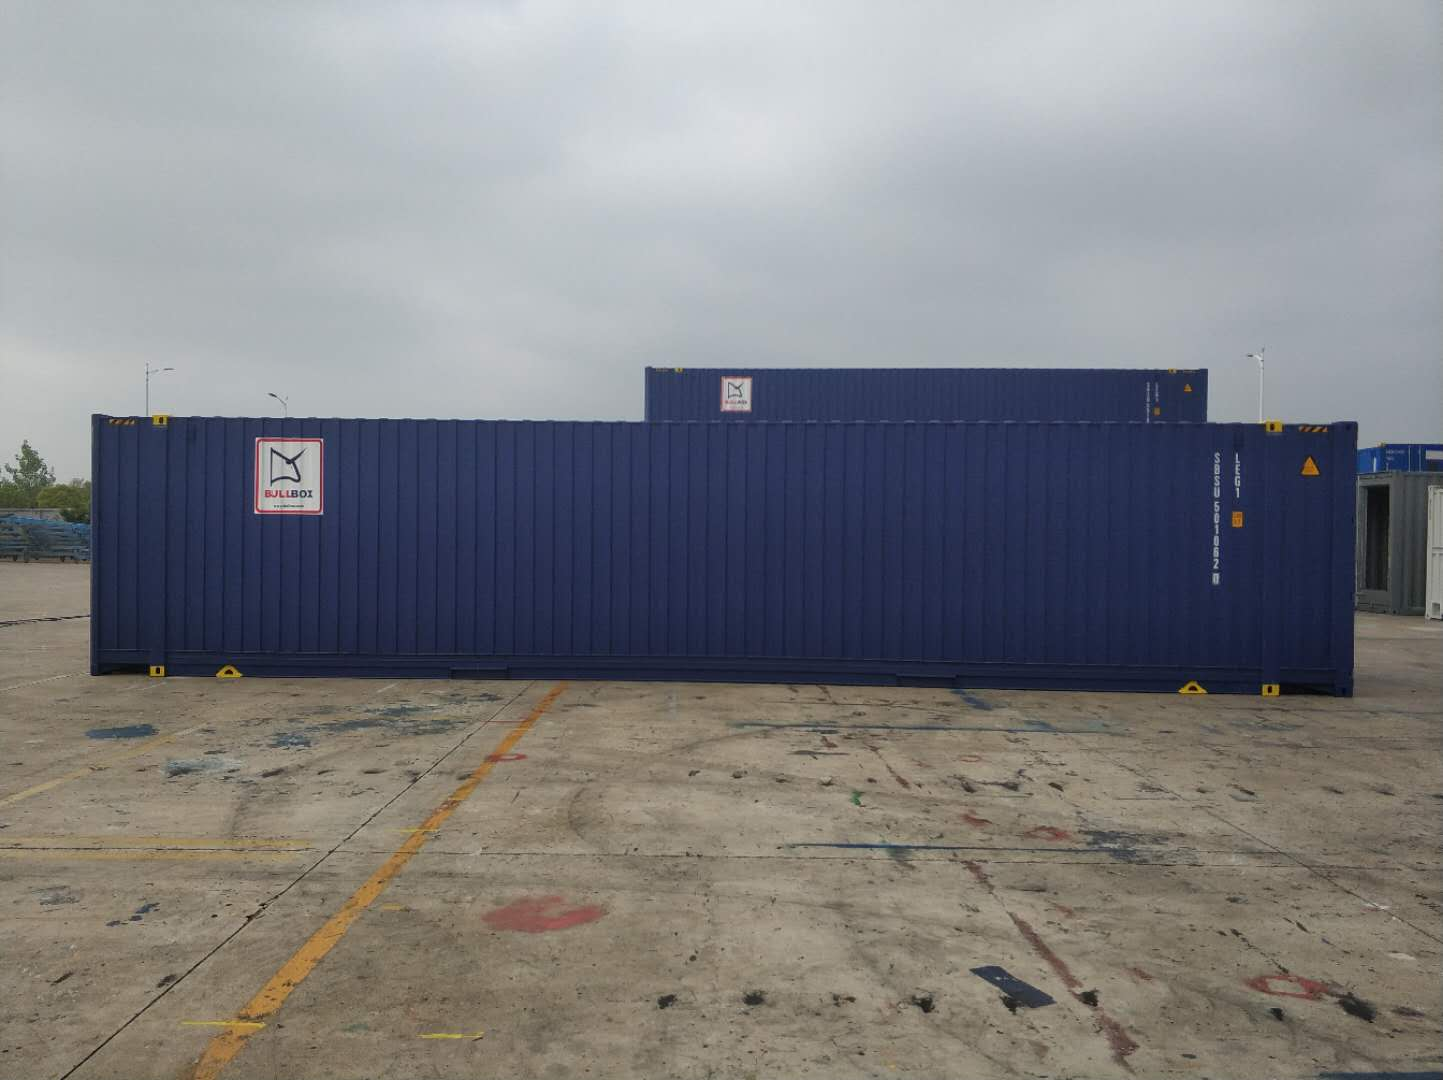 45 pallet wide high cube - 45' HC Pallet Wide container